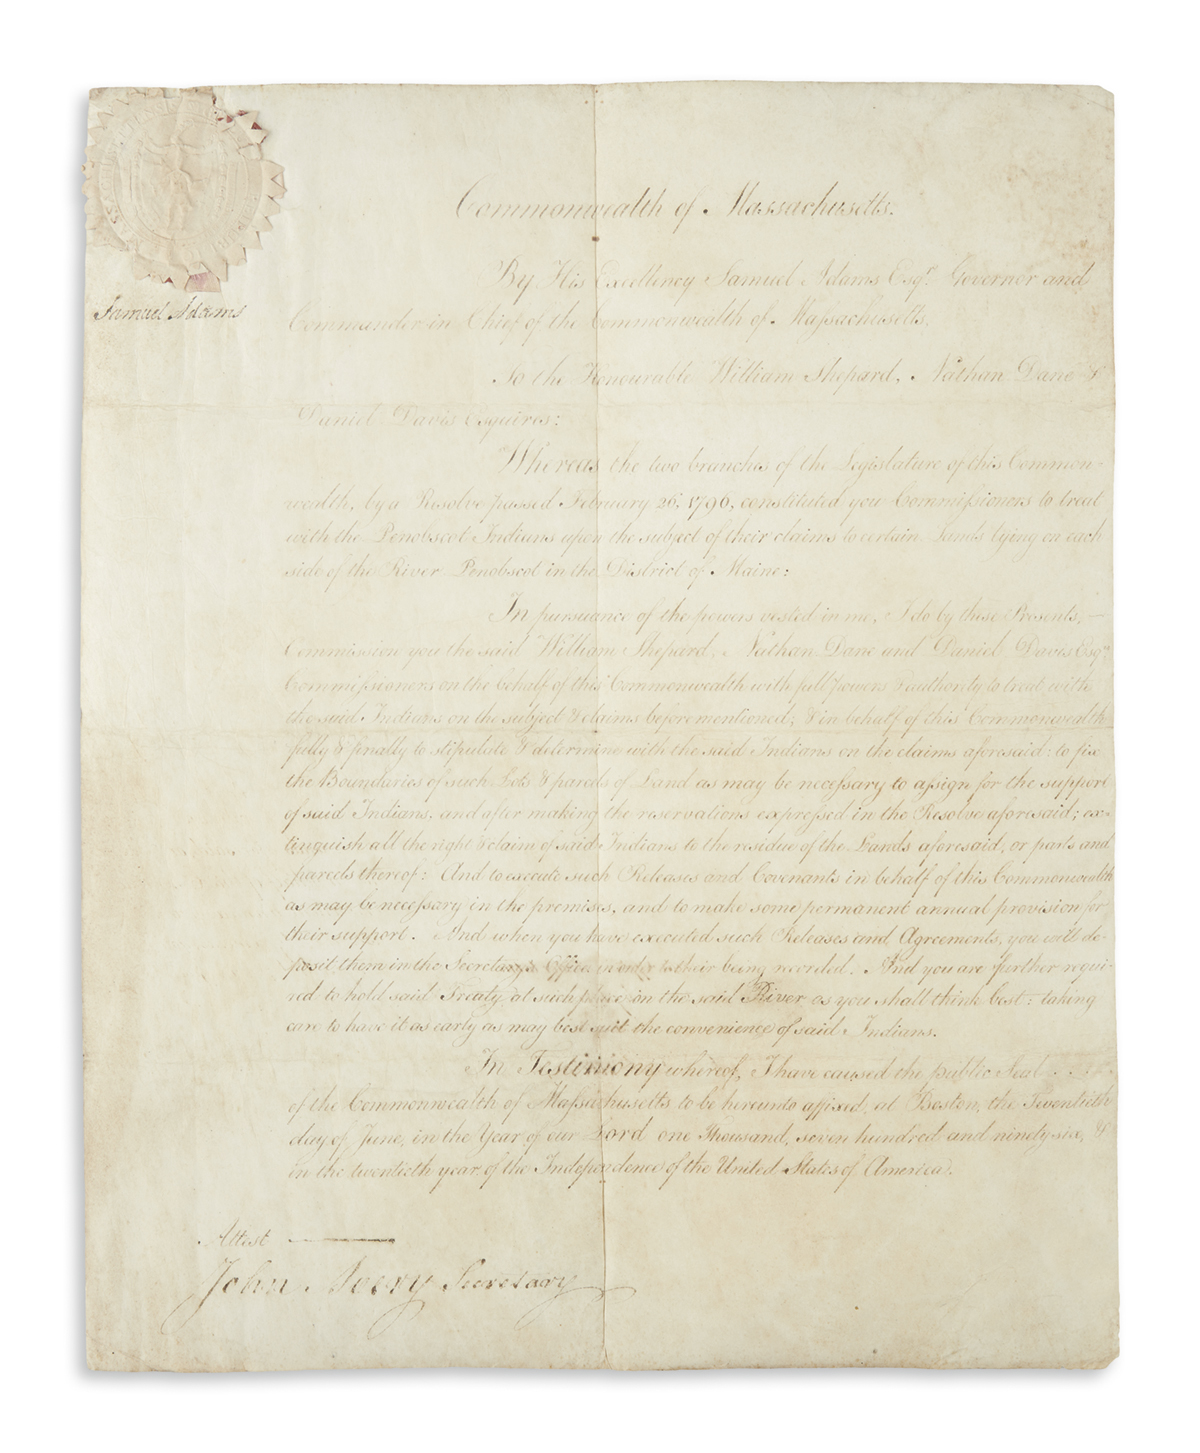 ADAMS-SAMUEL-Vellum-Document-Signed-as-Governor-appointing-t